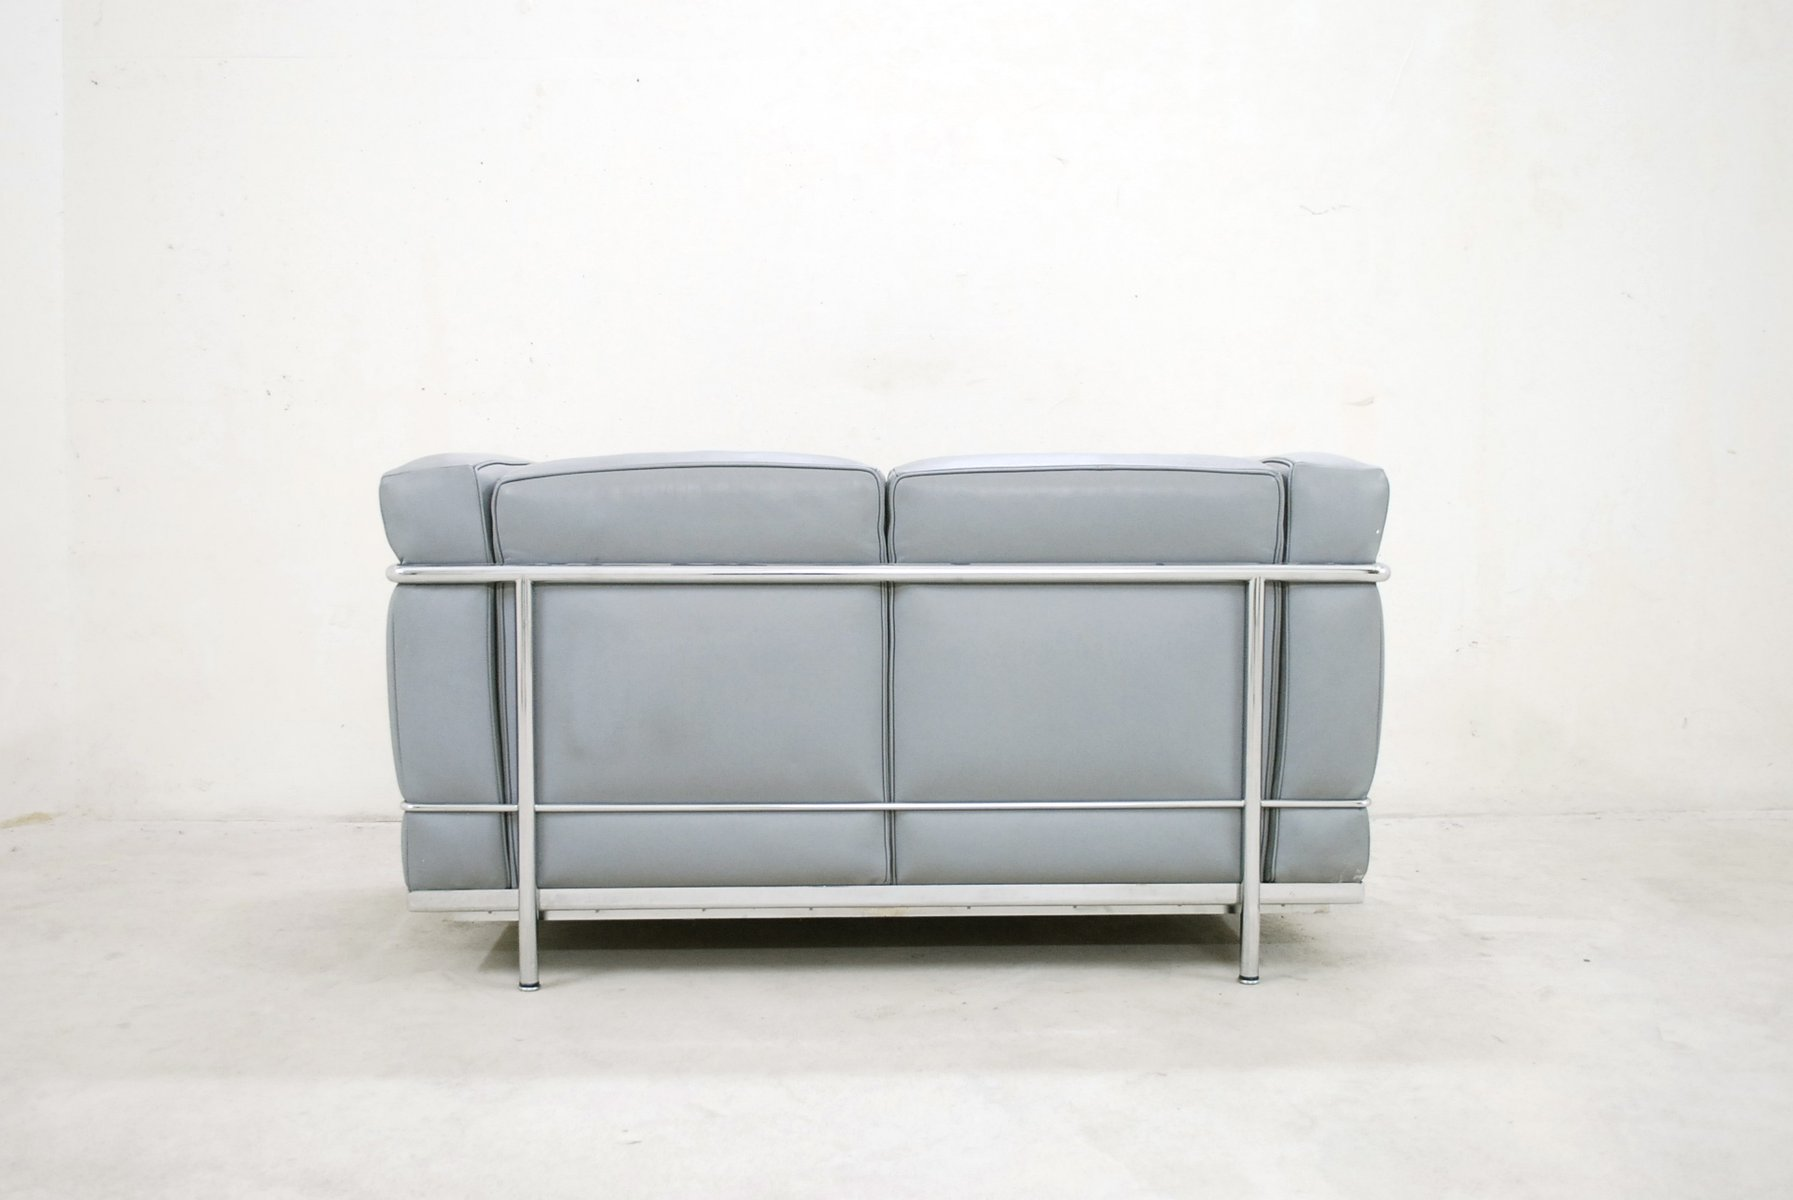 modell lc2 ledersofa von le corbusier f r cassina 1985 bei pamono kaufen. Black Bedroom Furniture Sets. Home Design Ideas